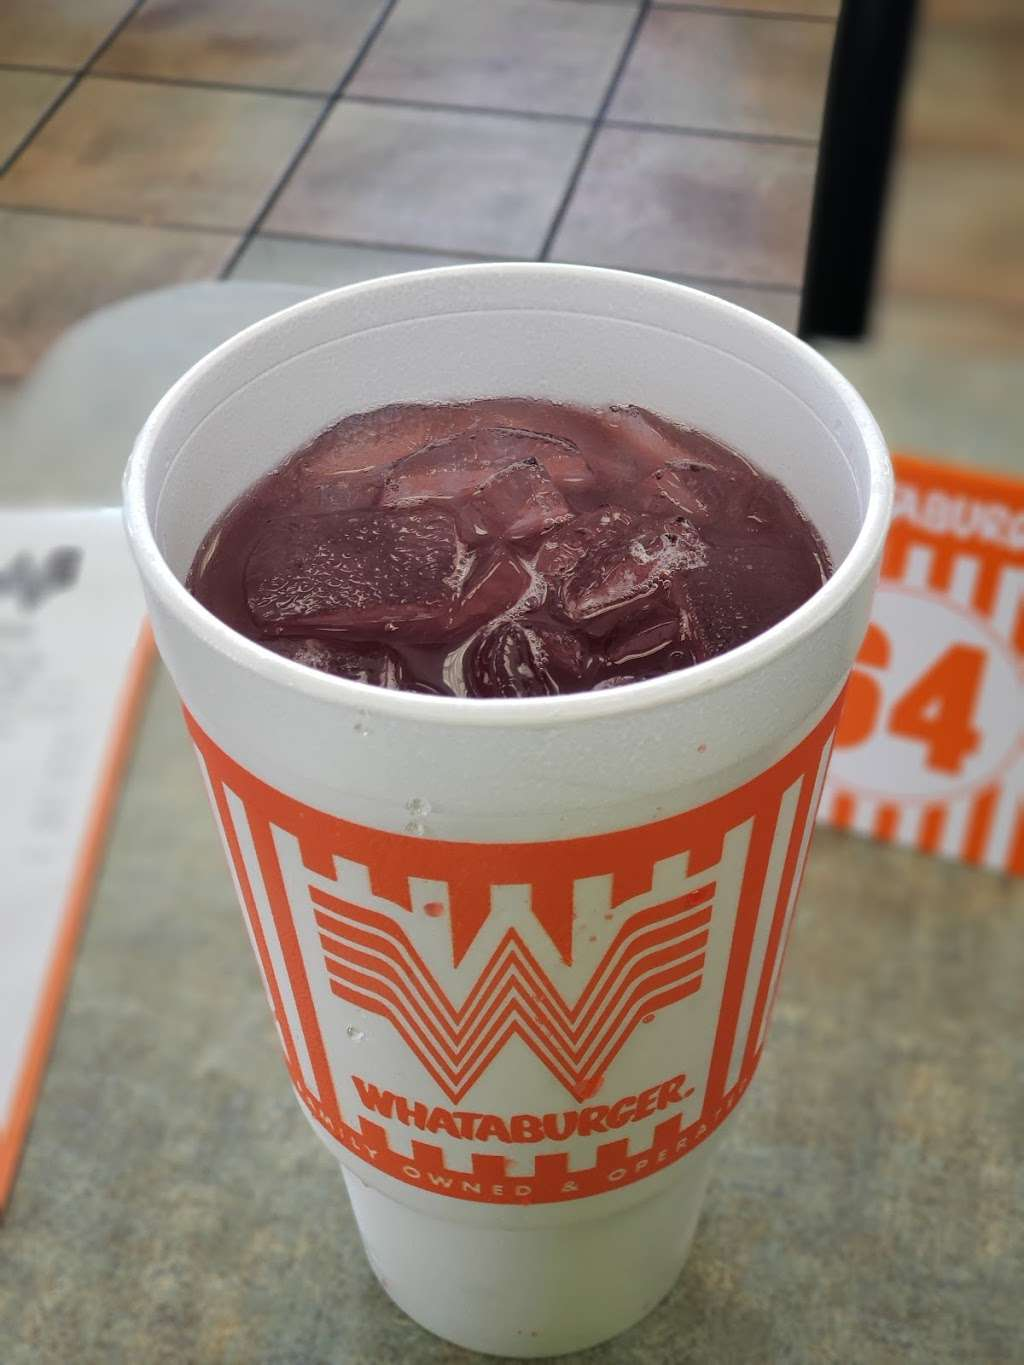 Whataburger - restaurant  | Photo 10 of 10 | Address: 2545 Firewheel Pkwy, Garland, TX 75040, USA | Phone: (972) 530-2353